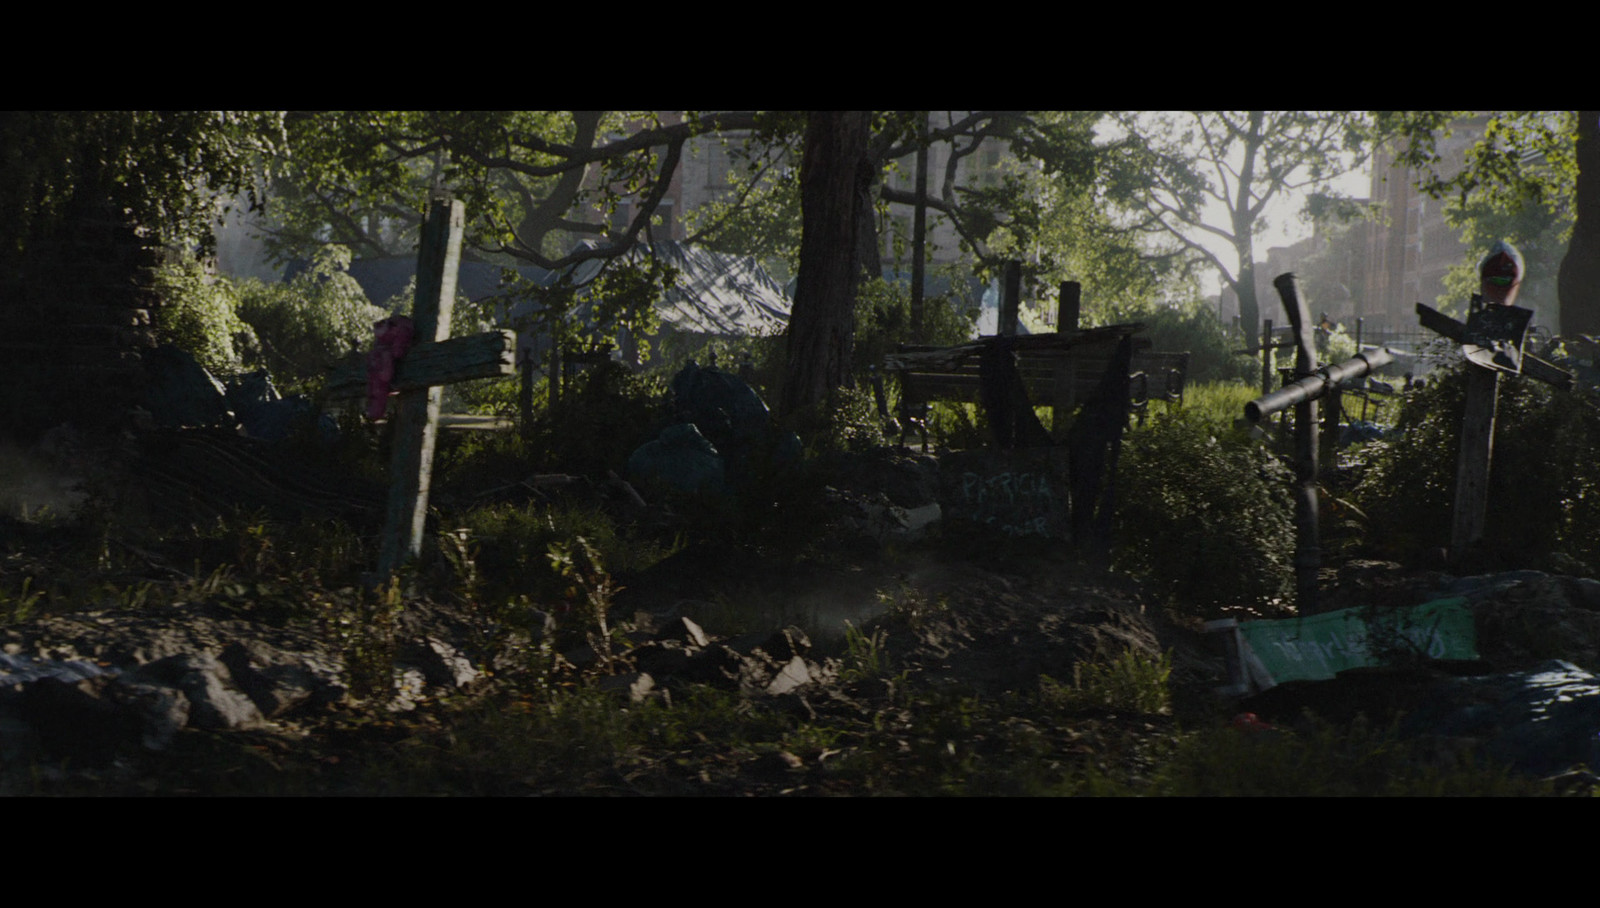 Park, screenshot from cinematic.